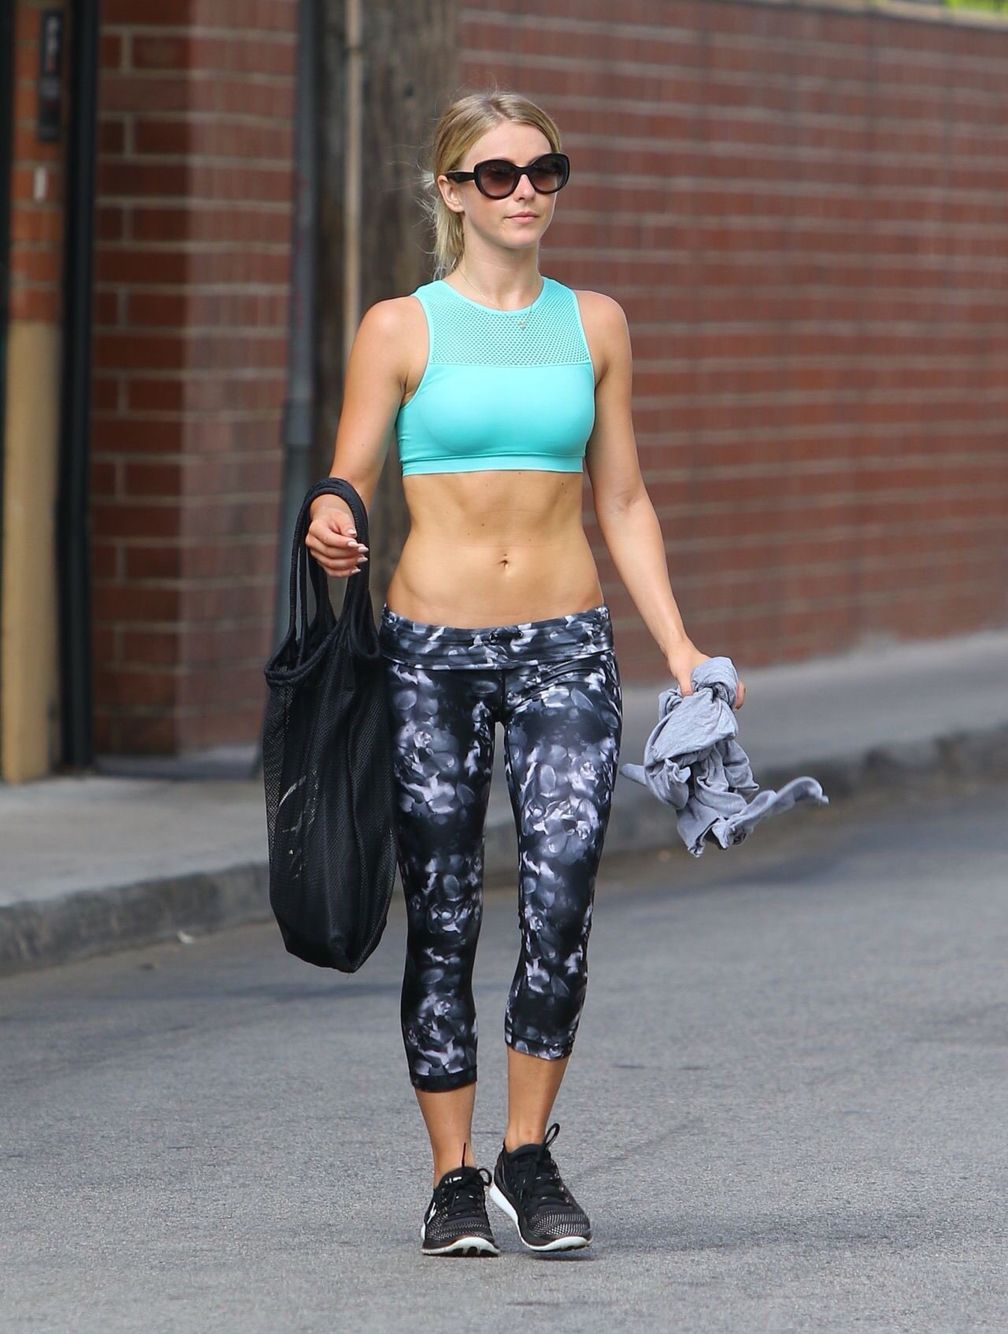 And again... Plus love the workout outfit